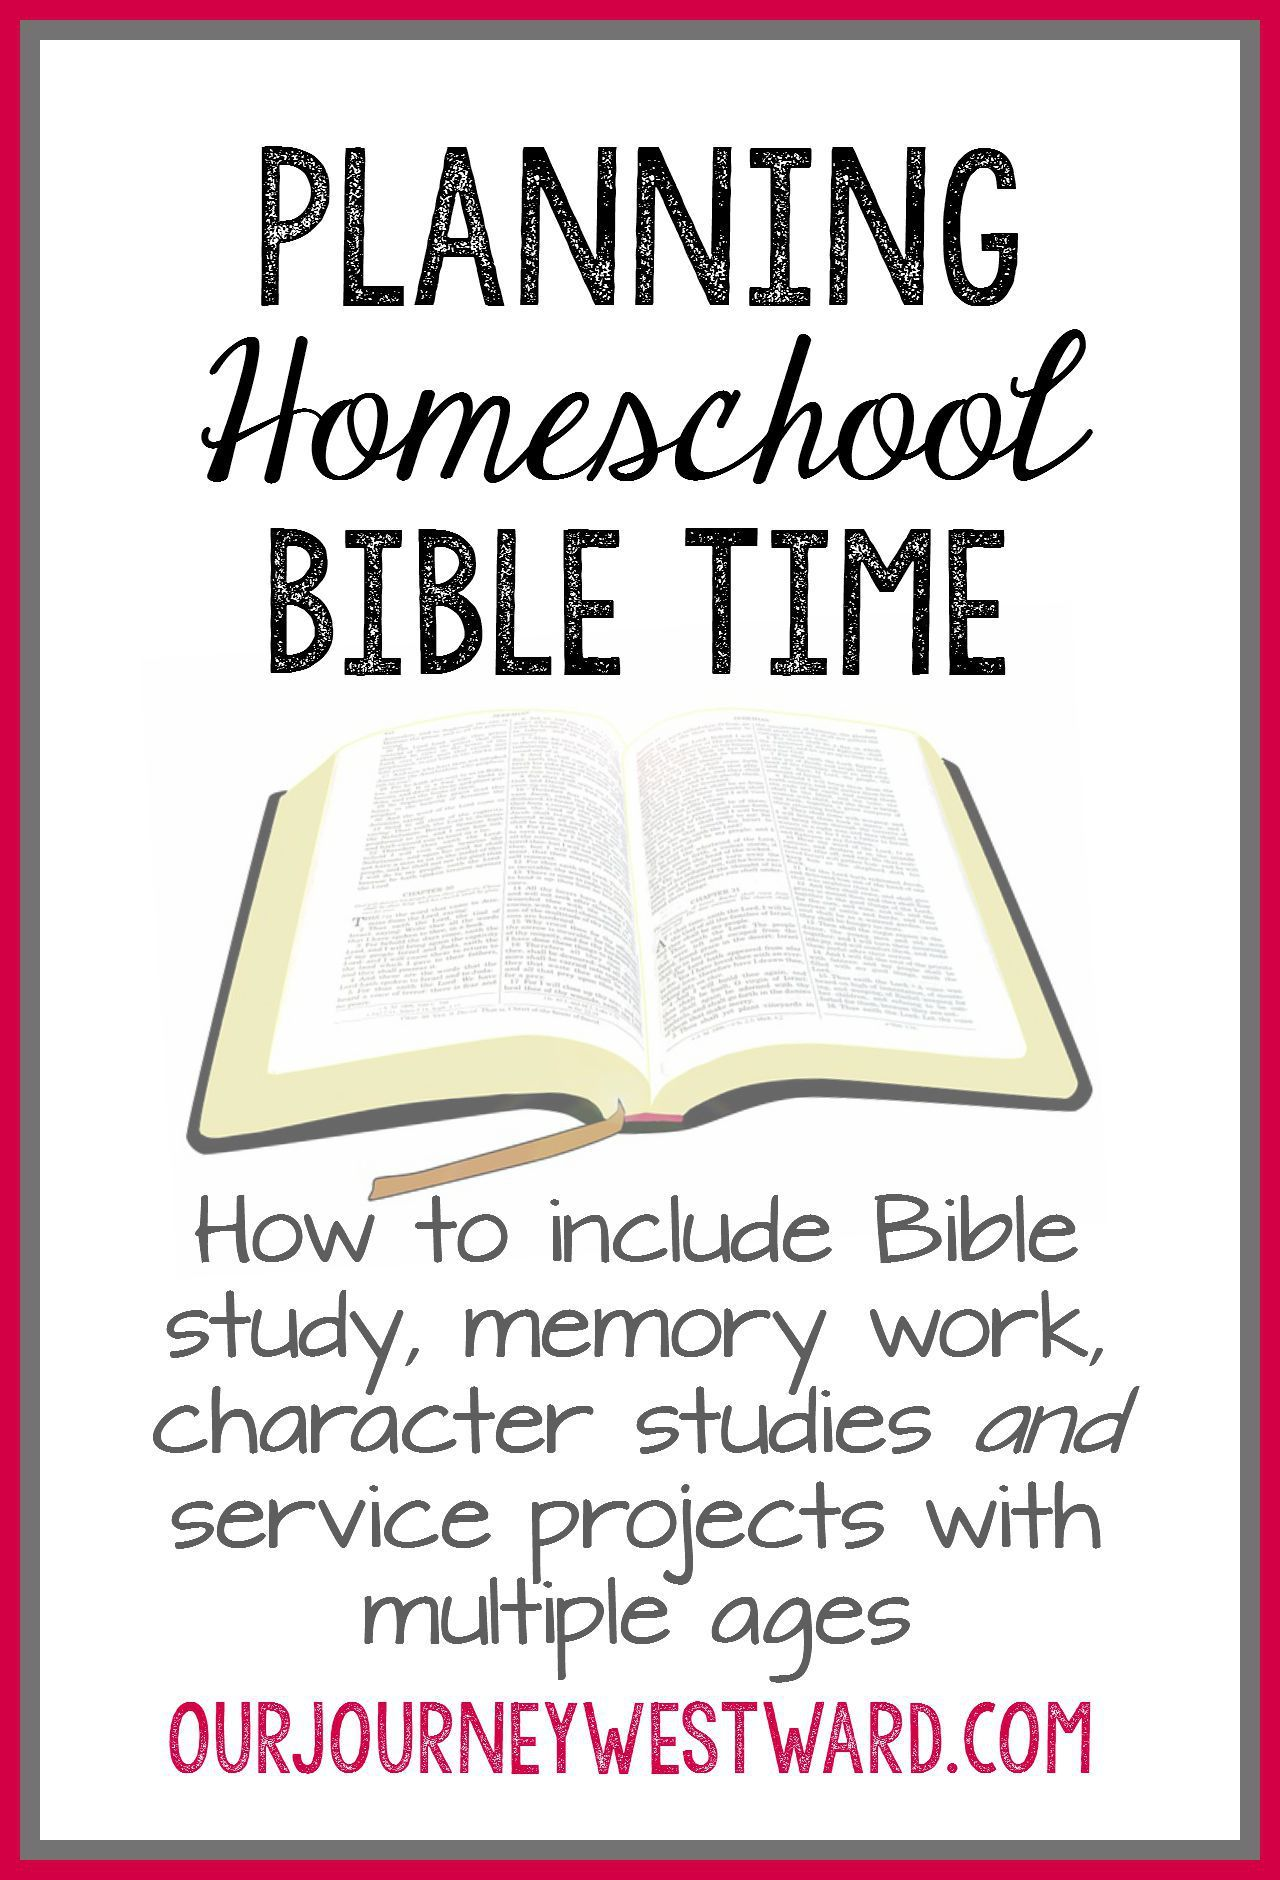 How to study God's Word vibrantly as a homeschool subject - planning homeschool Bible time